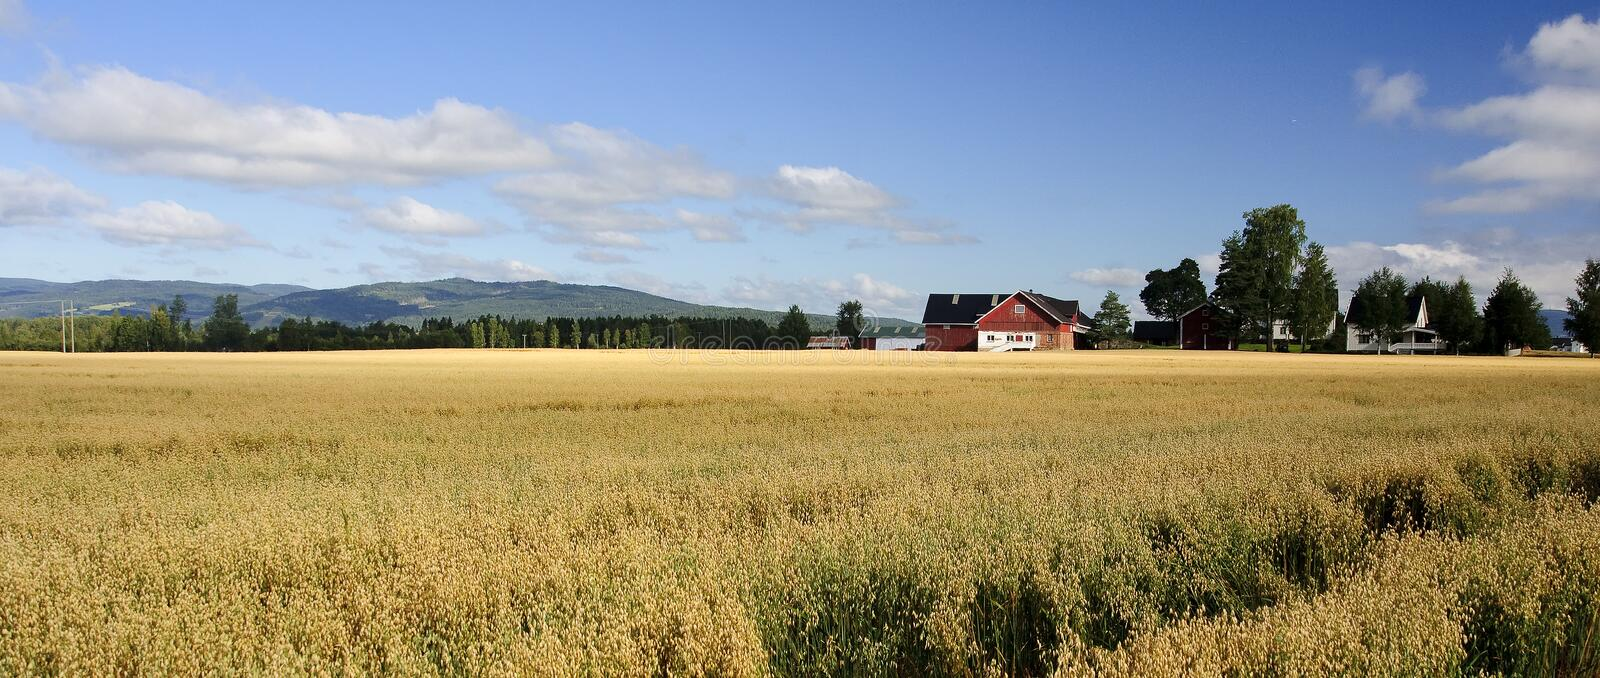 A typical Scandinavian farm royalty free stock images